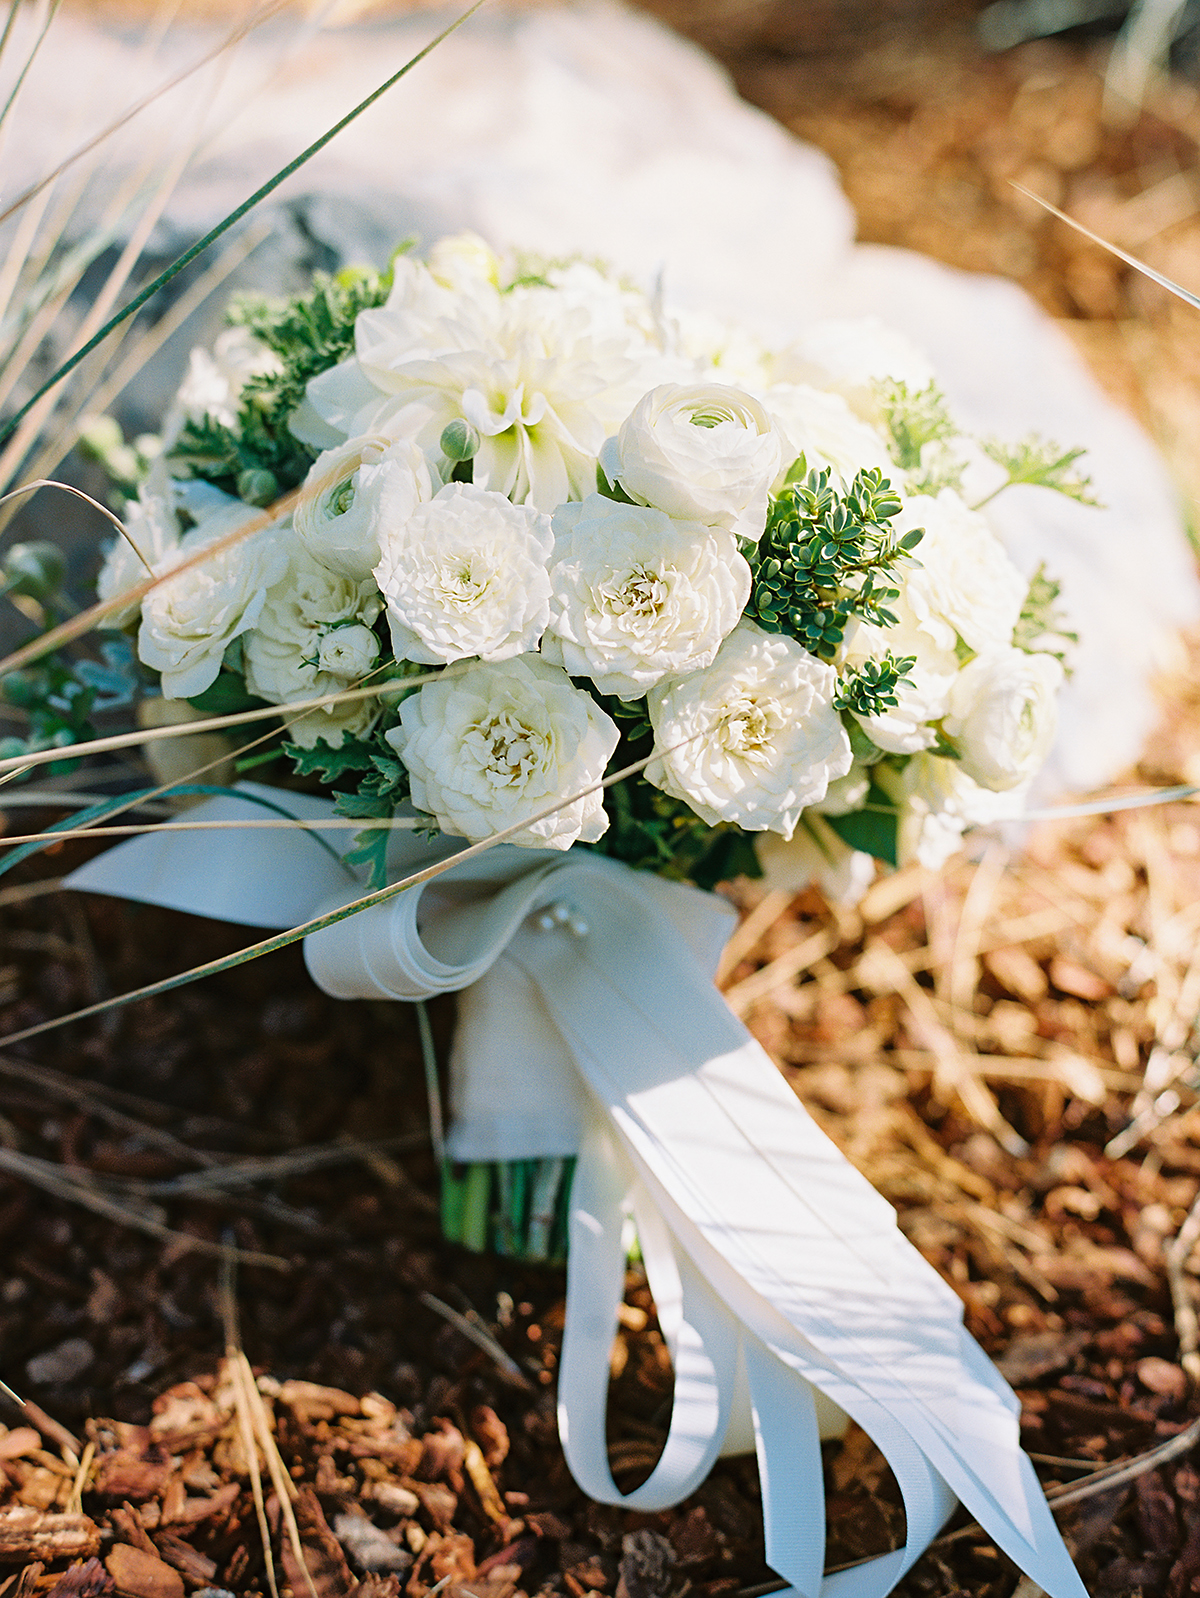 Heirloom Floral Design -  Bend Weddings - Flowers to Hold Private Residence Cline Falls 2.jpg